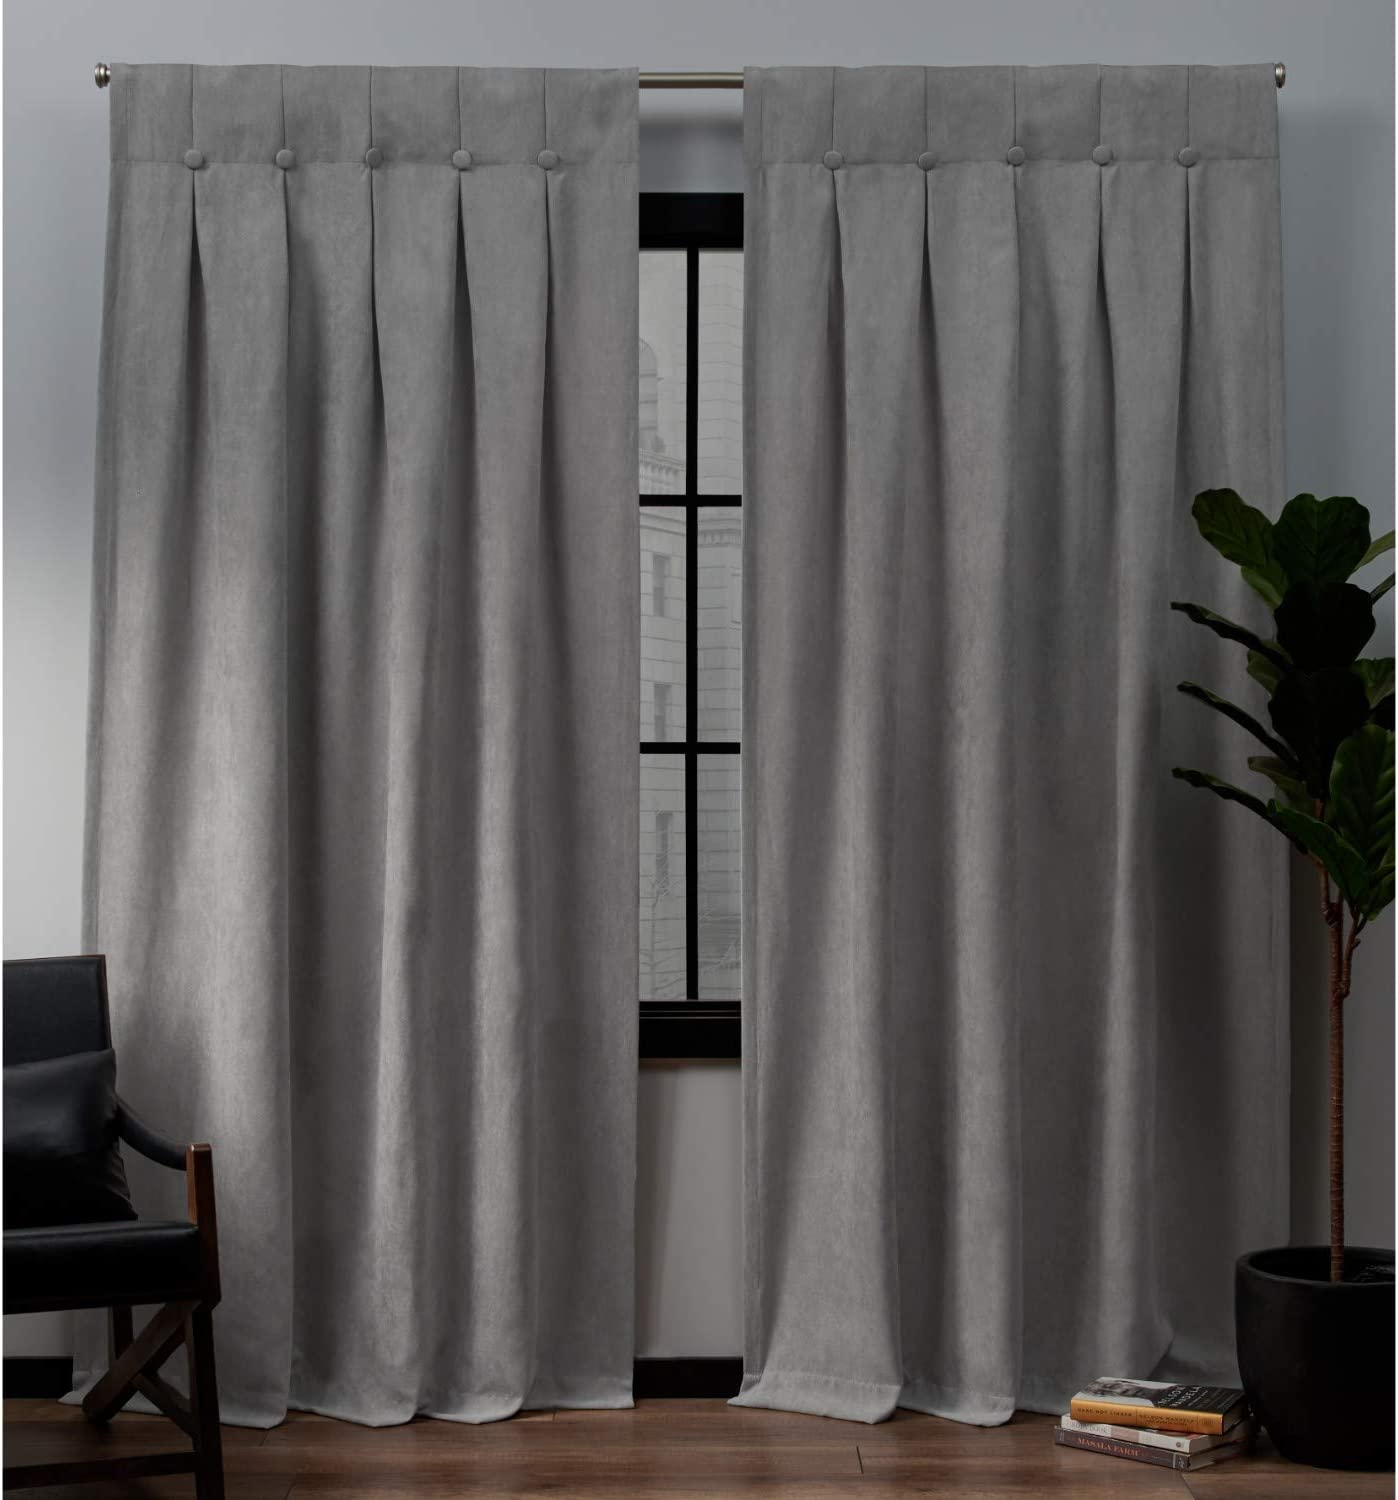 Exclusive Home Curtains Ghent Metrosuede Inverted Pleat Button Top Curtain Panel Pair, 32x96, Dove Grey